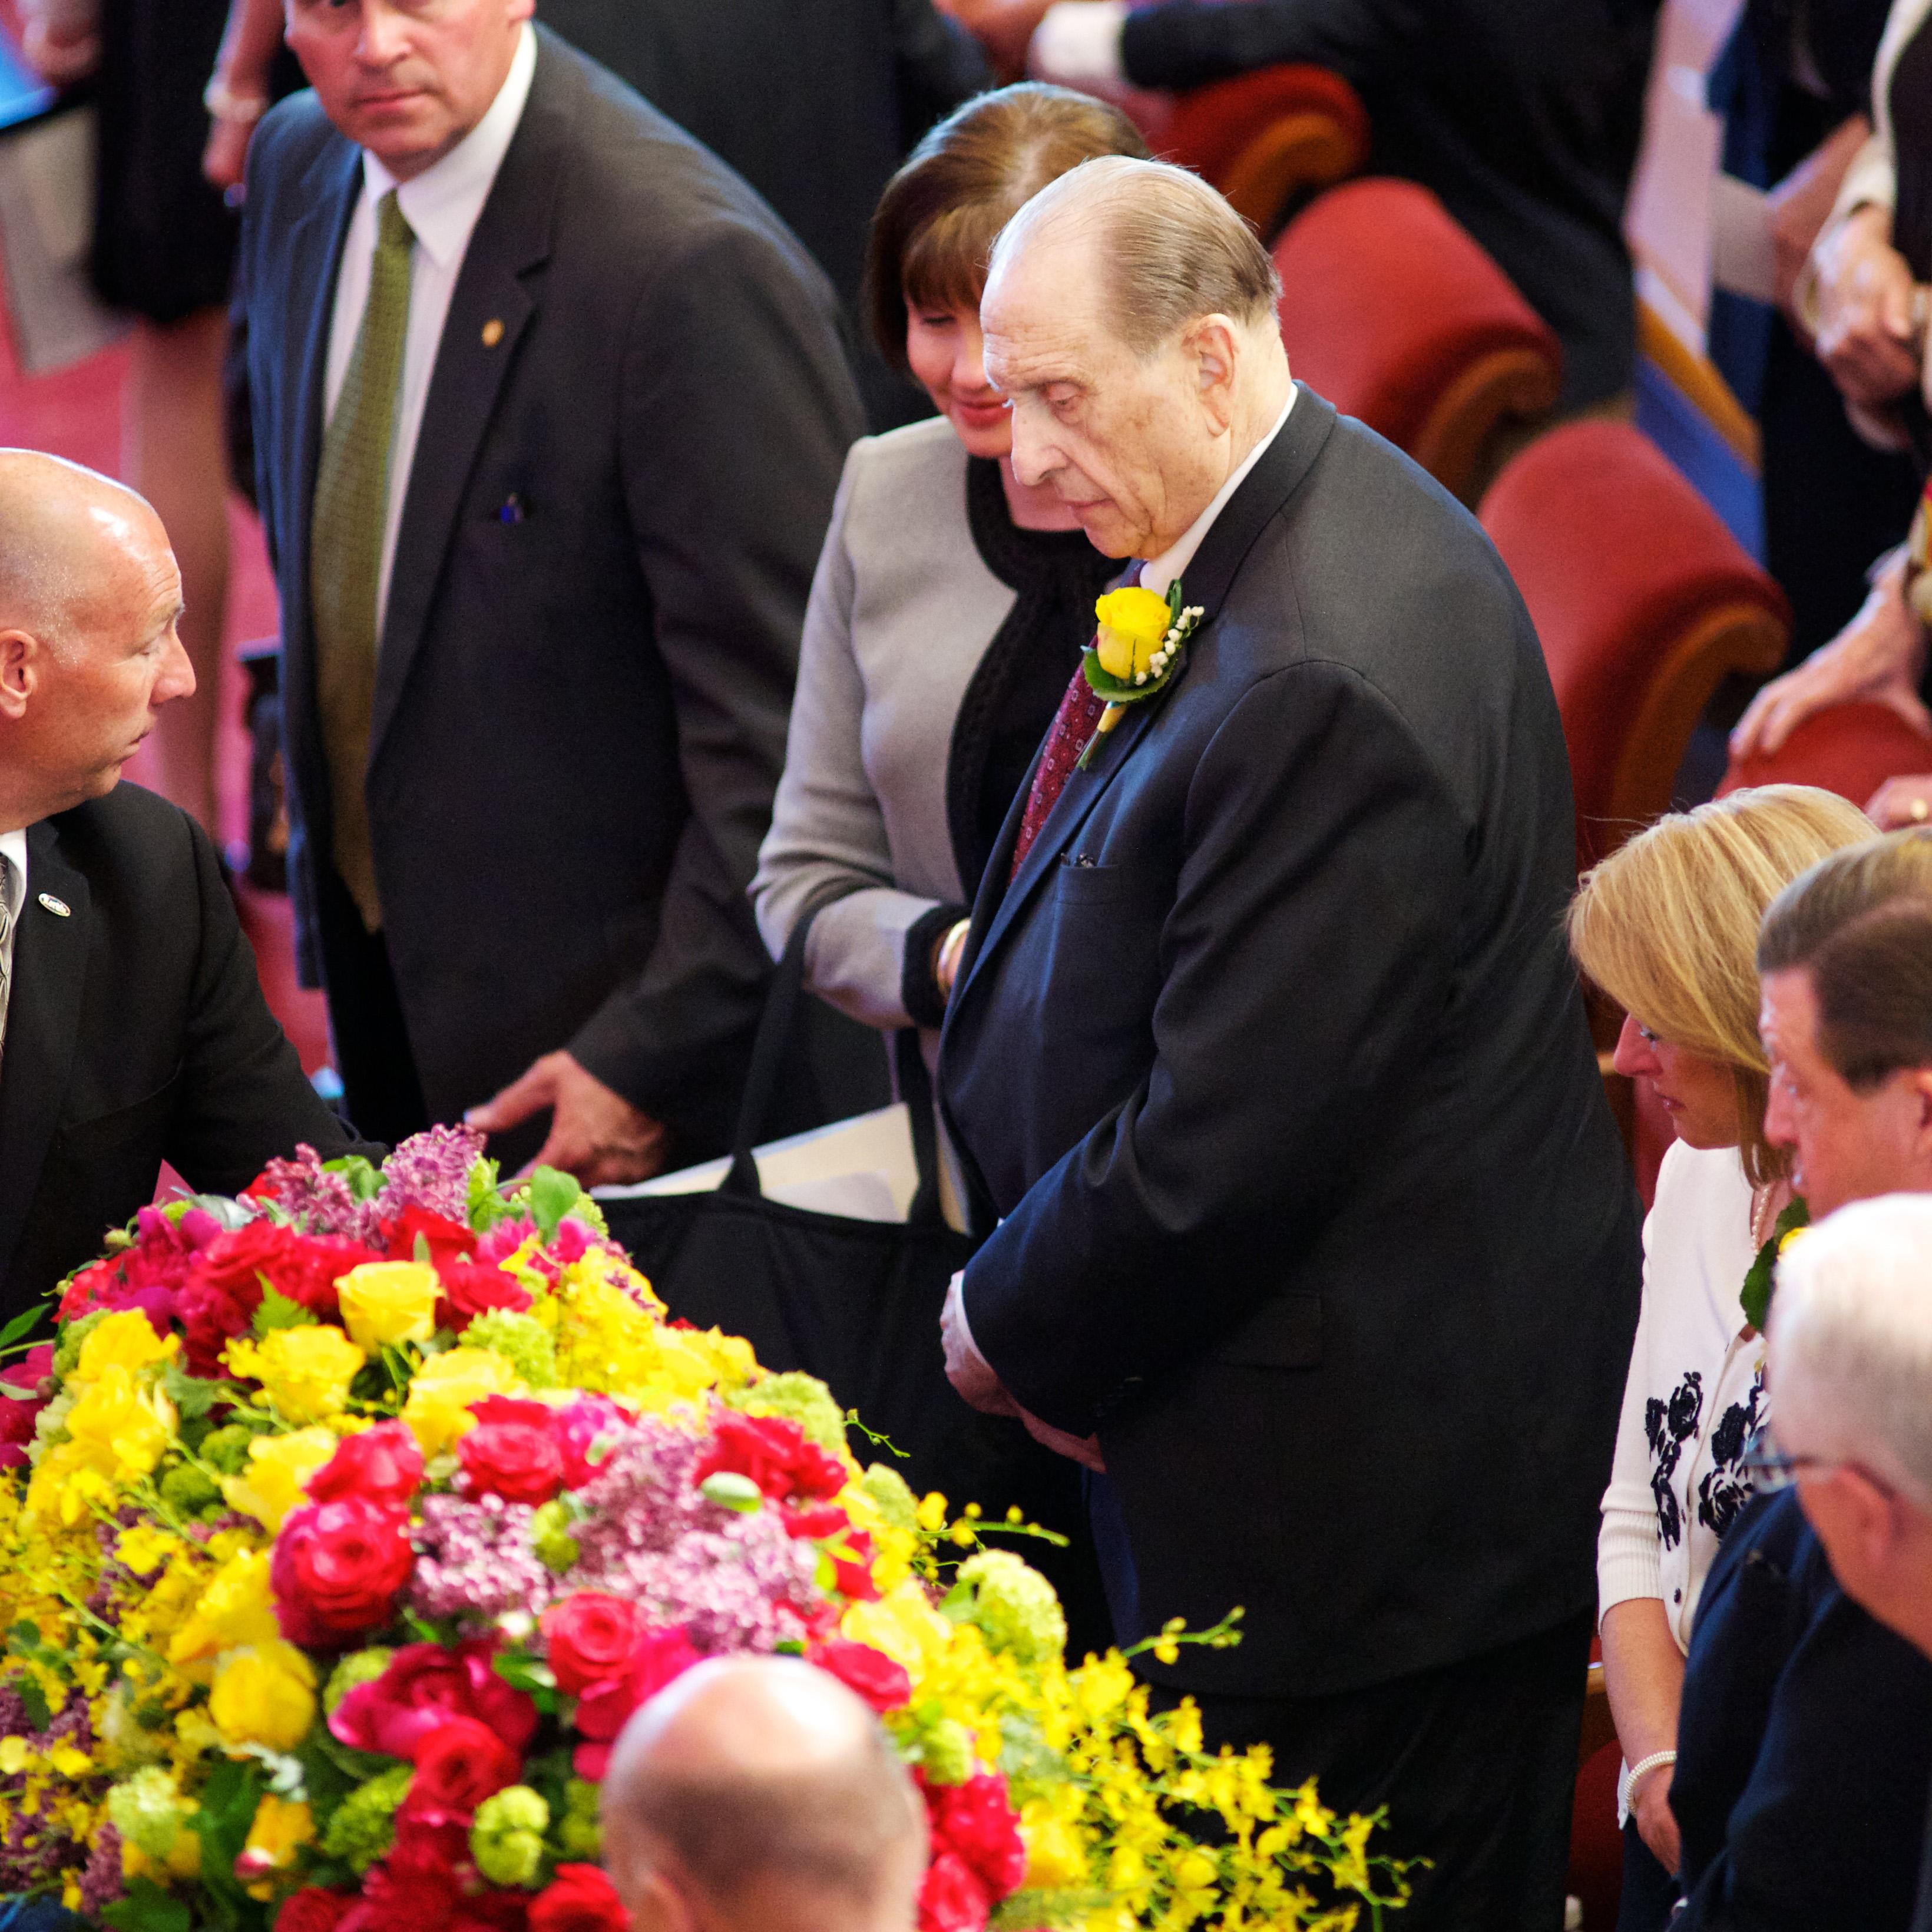 President Thomas S. Monson, Ann M. Dibb and family at the funeral of his wife, Frances J. Monson. (Photo: MormonNewsroom.org)<p></p>